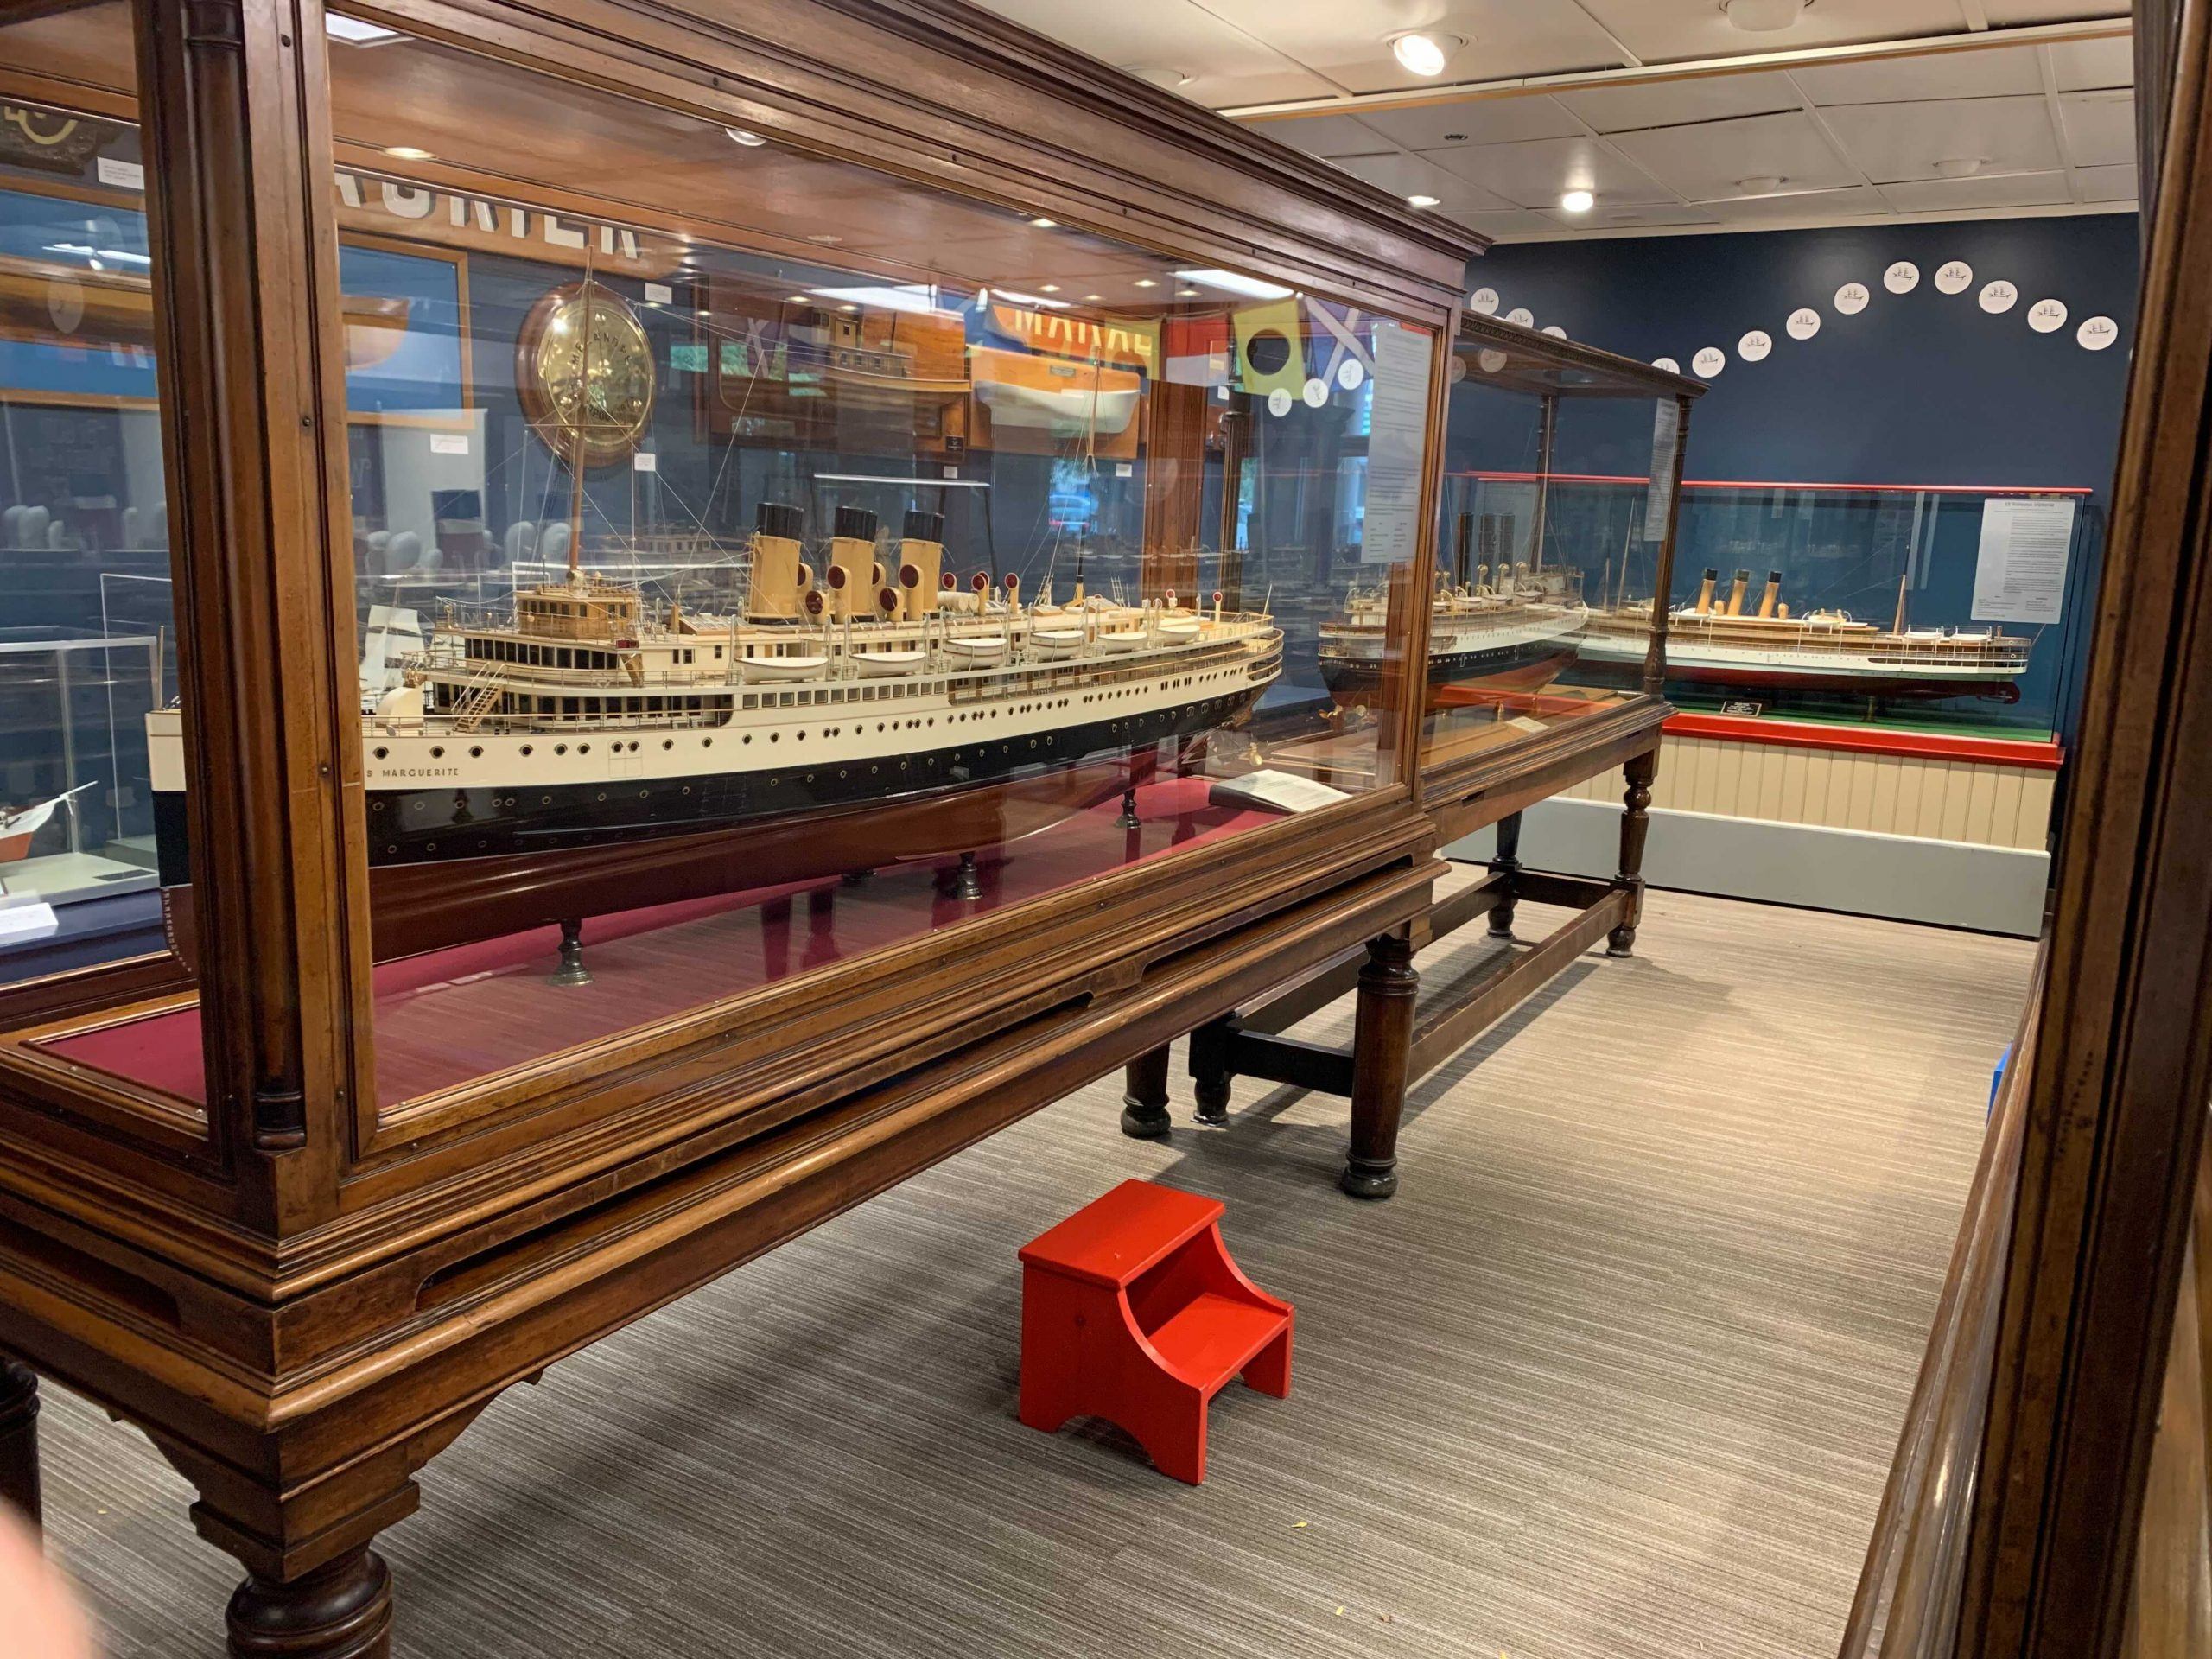 Display cases at the Maritime Museum of BC